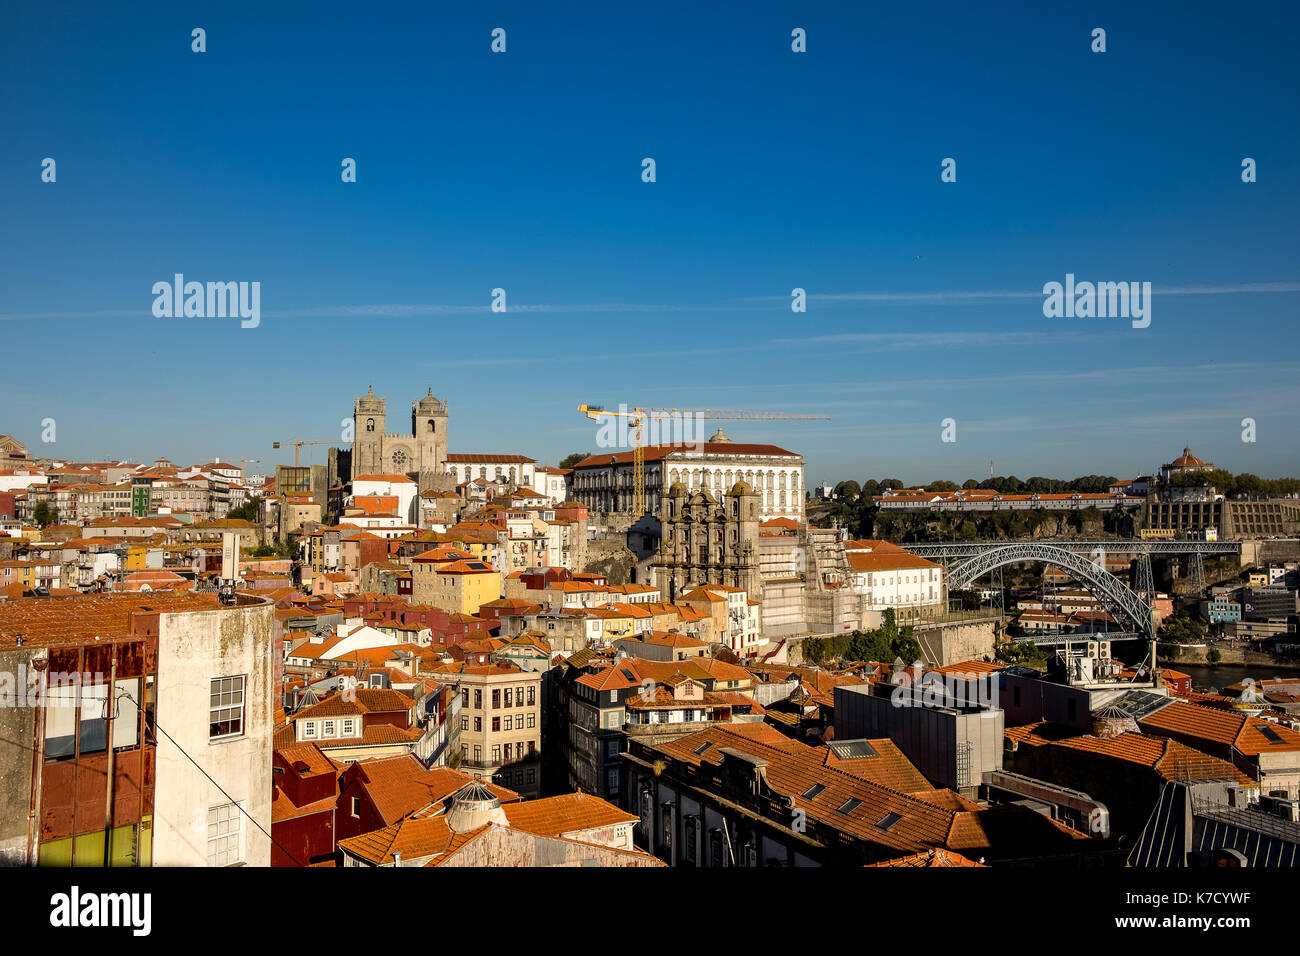 landscape view of the city Porto at the North of Portugal, this amazing site is an wide open architecture class from the roman conquers to nowadays - Stock Image